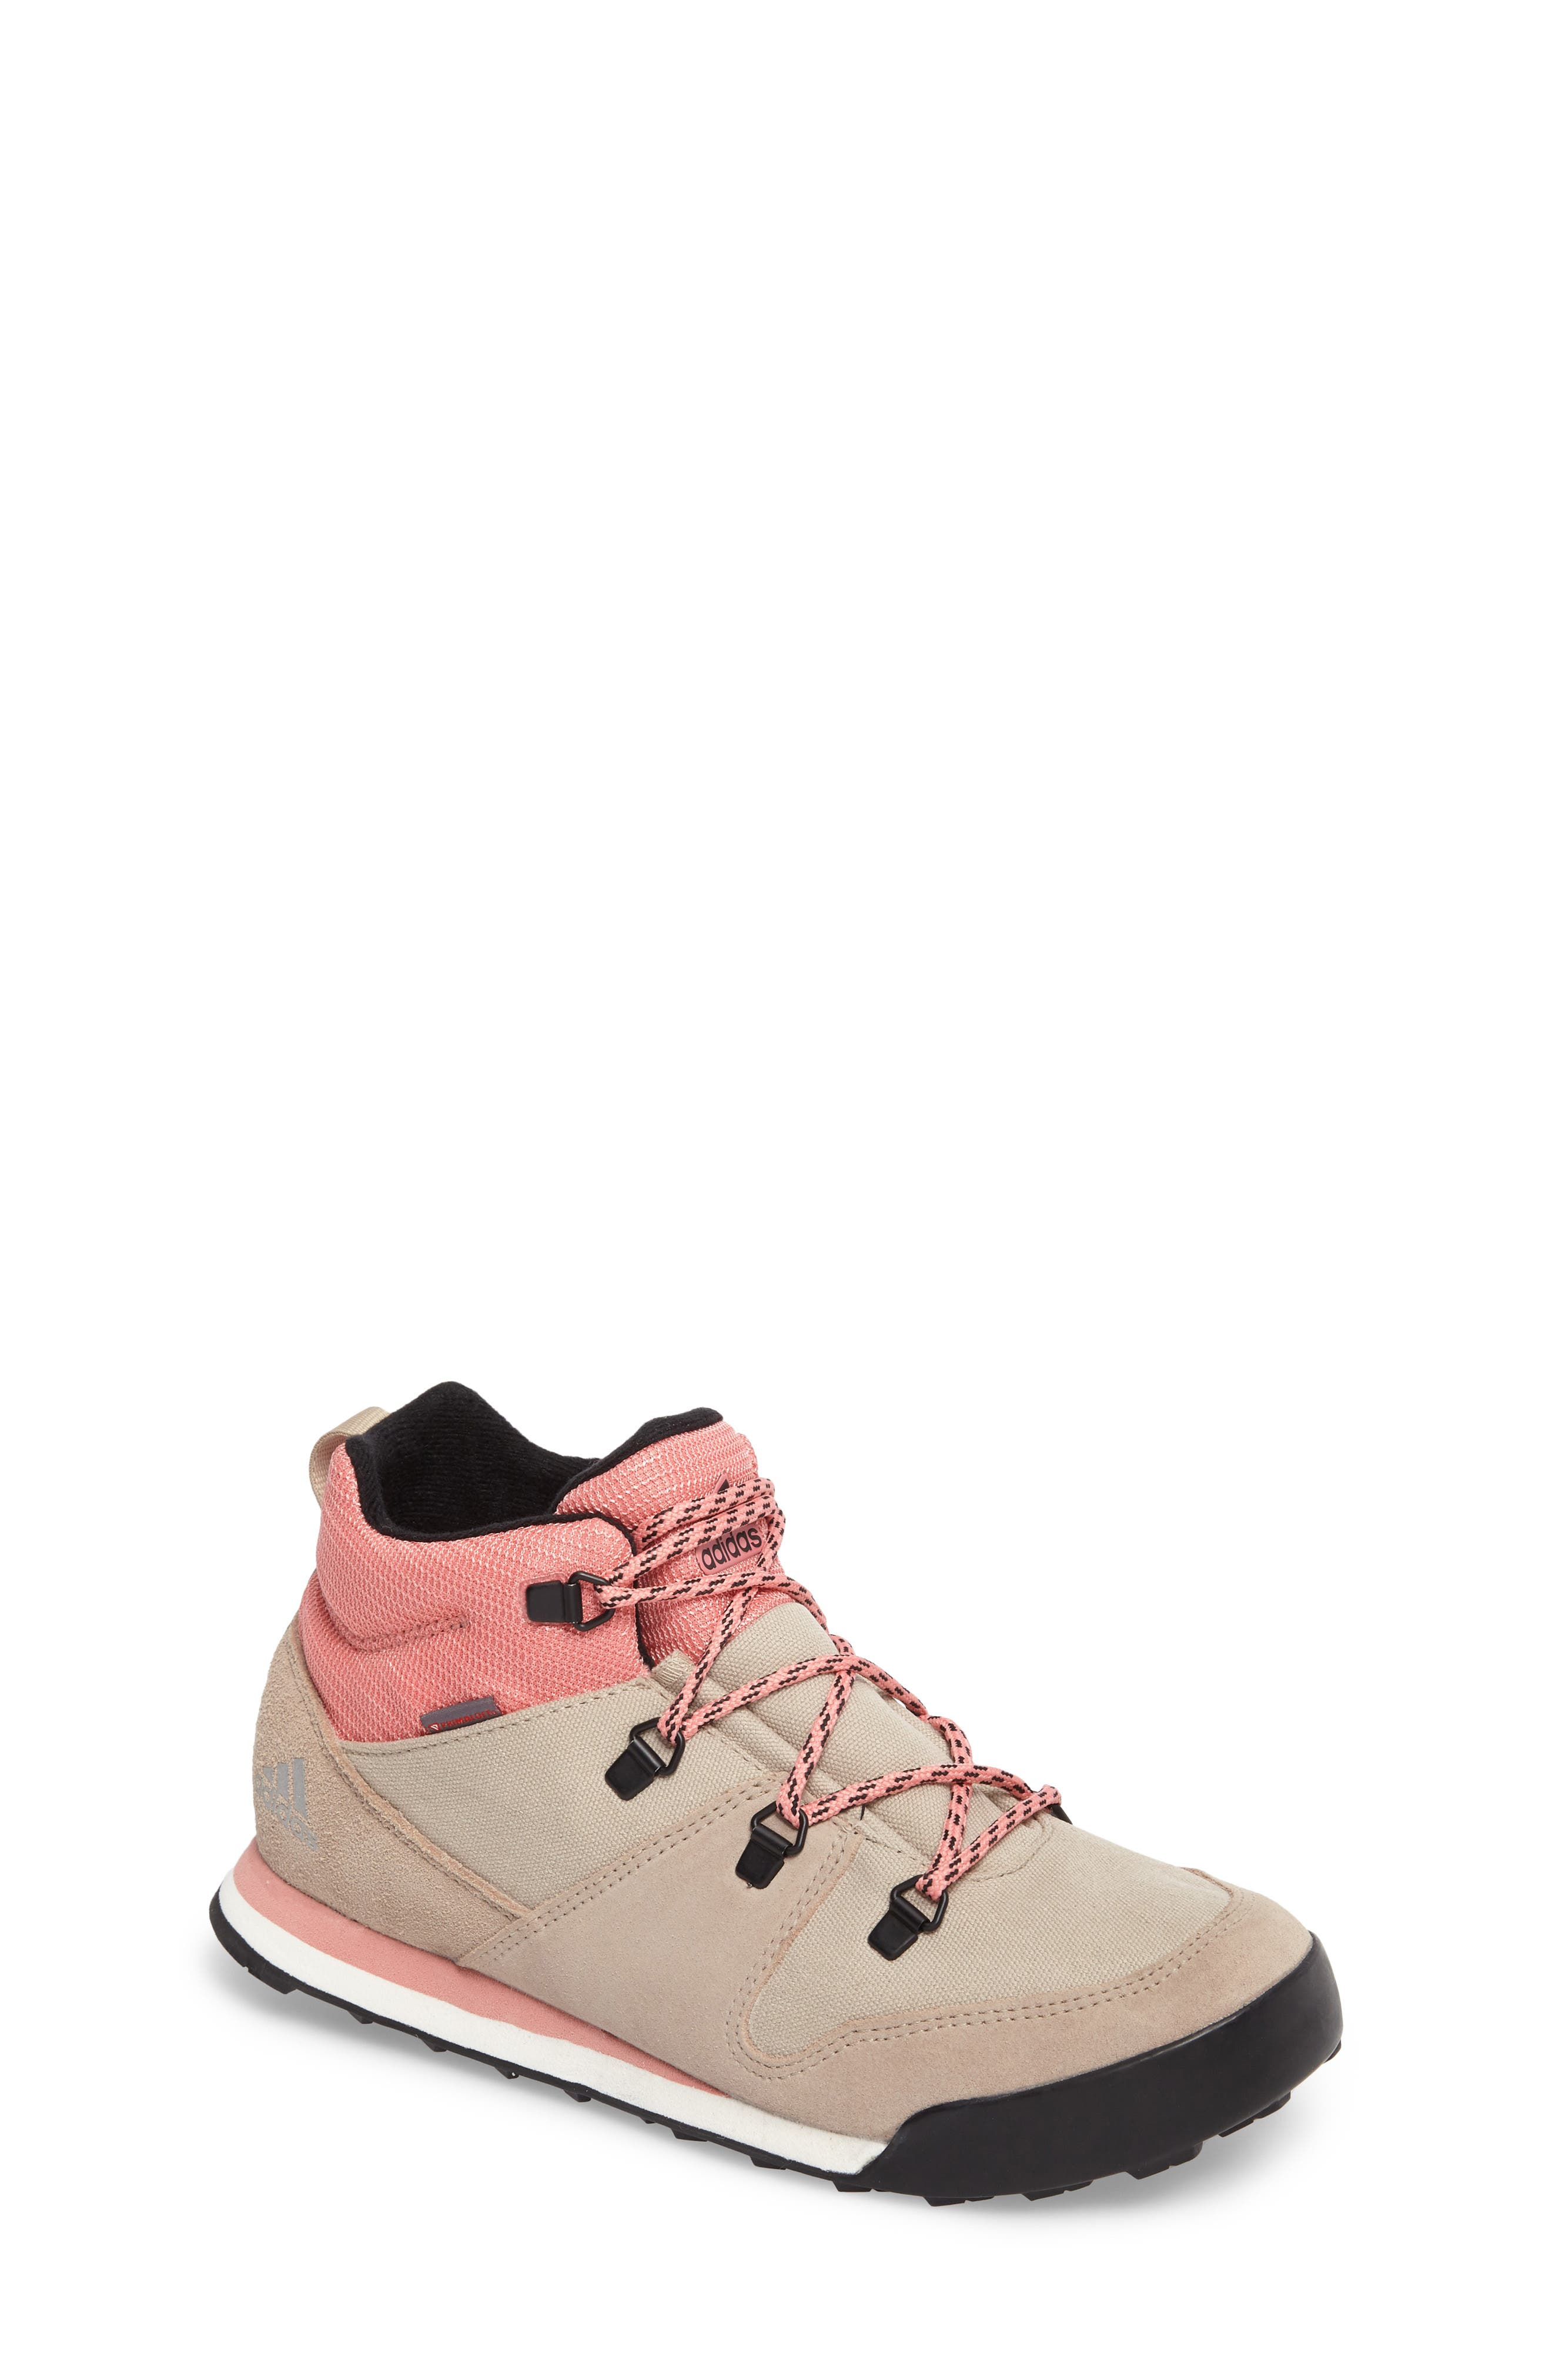 Snowpitch Insulated Sneaker Boot,                         Main,                         color, Icey Pink/ Khaki/ Energy Pink